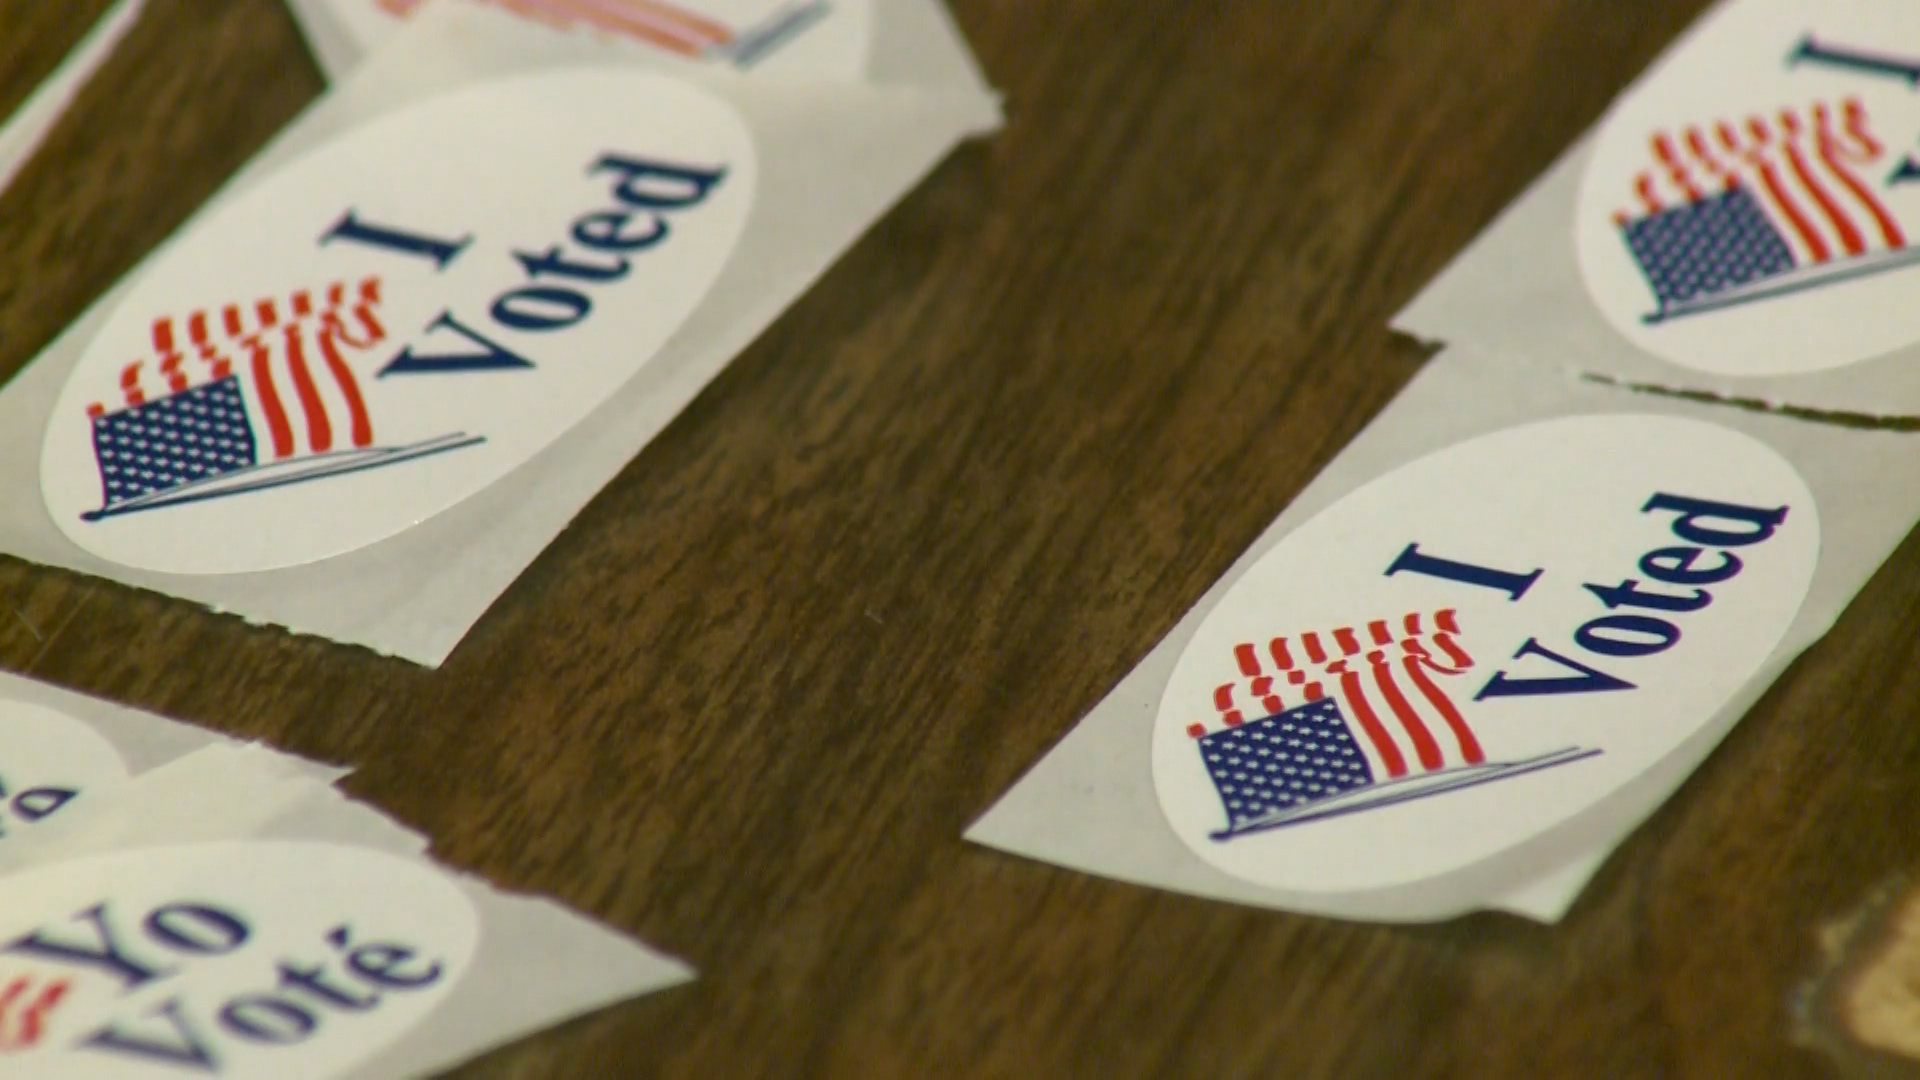 Wichita County Clerk Lori Bohannon said she doesn't believe there is a need to strictly do mail-in ballots.